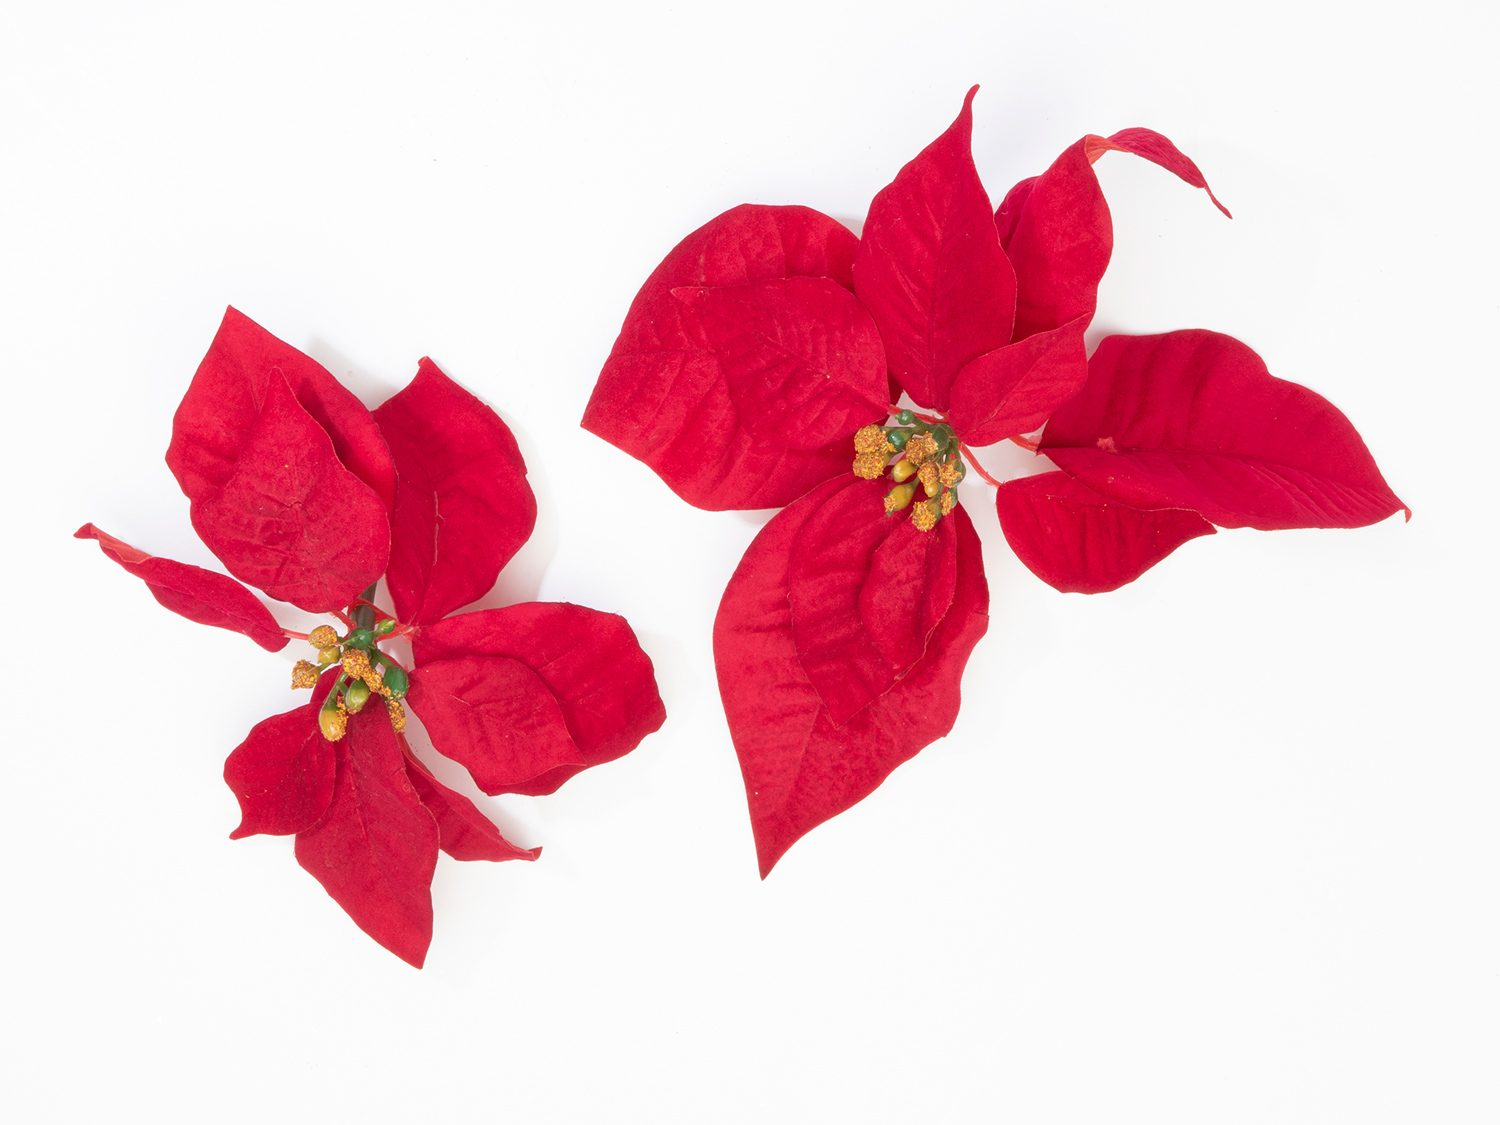 Poinsettias are only mildly toxic to dogs and cats.